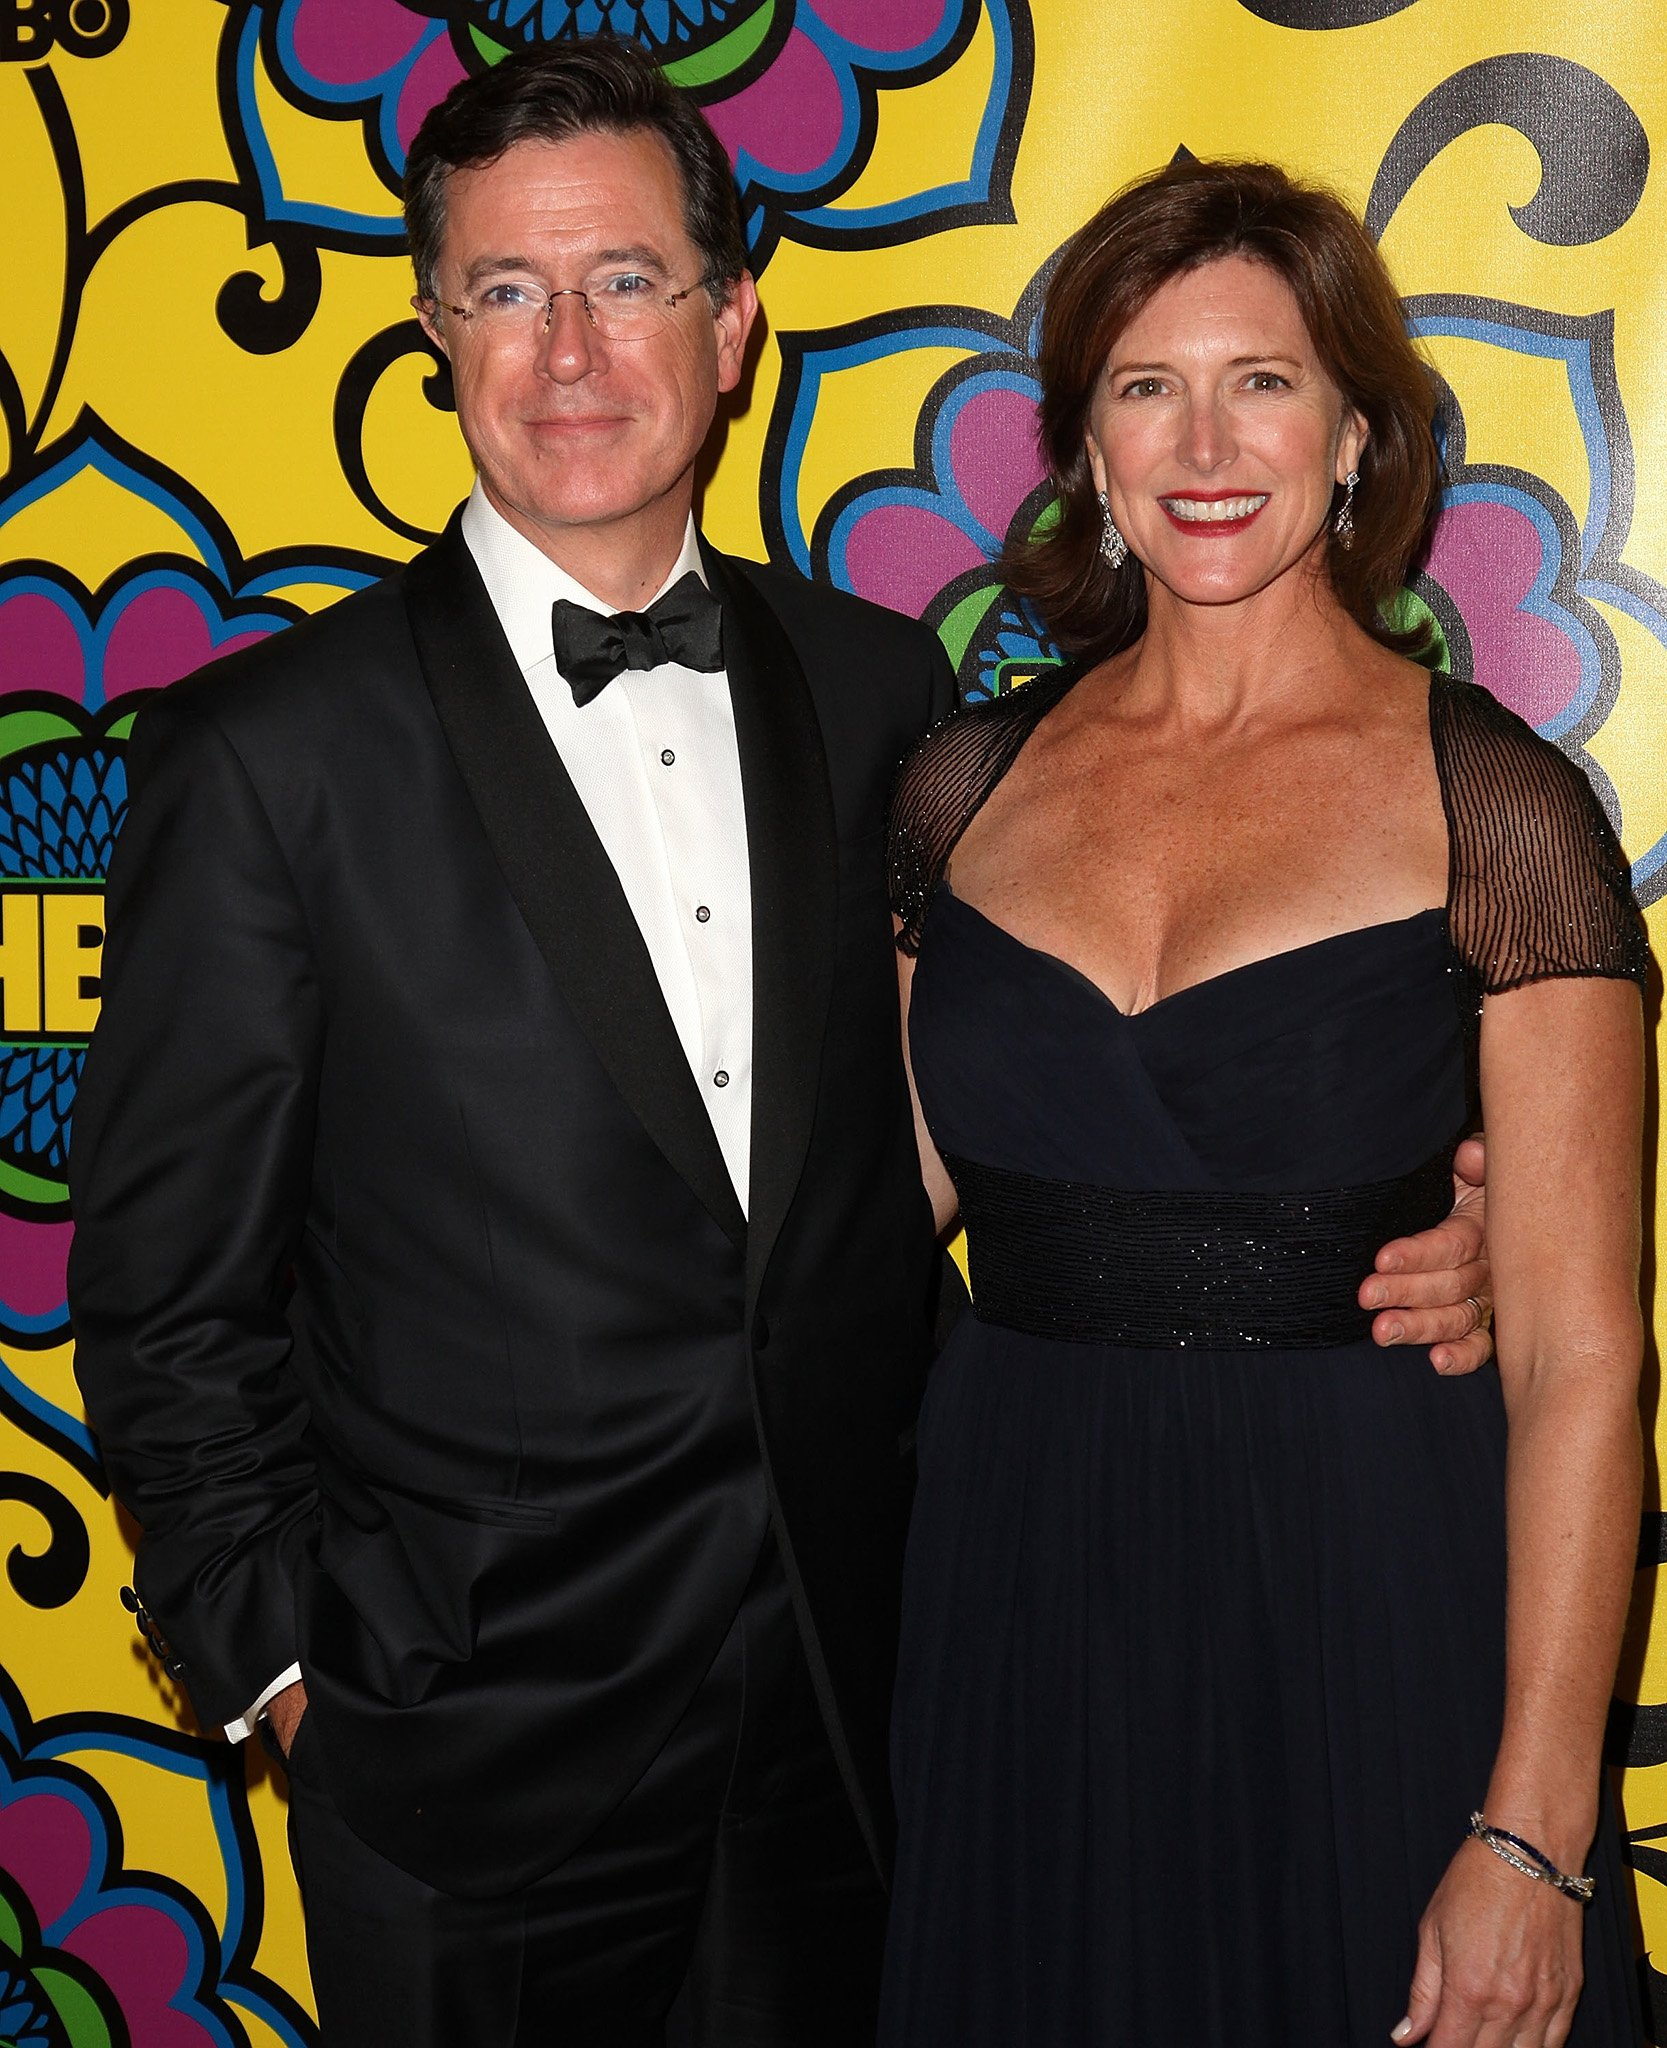 Stephen Colbert said that from the moment he saw Evelyn, he knew he was going to marry her